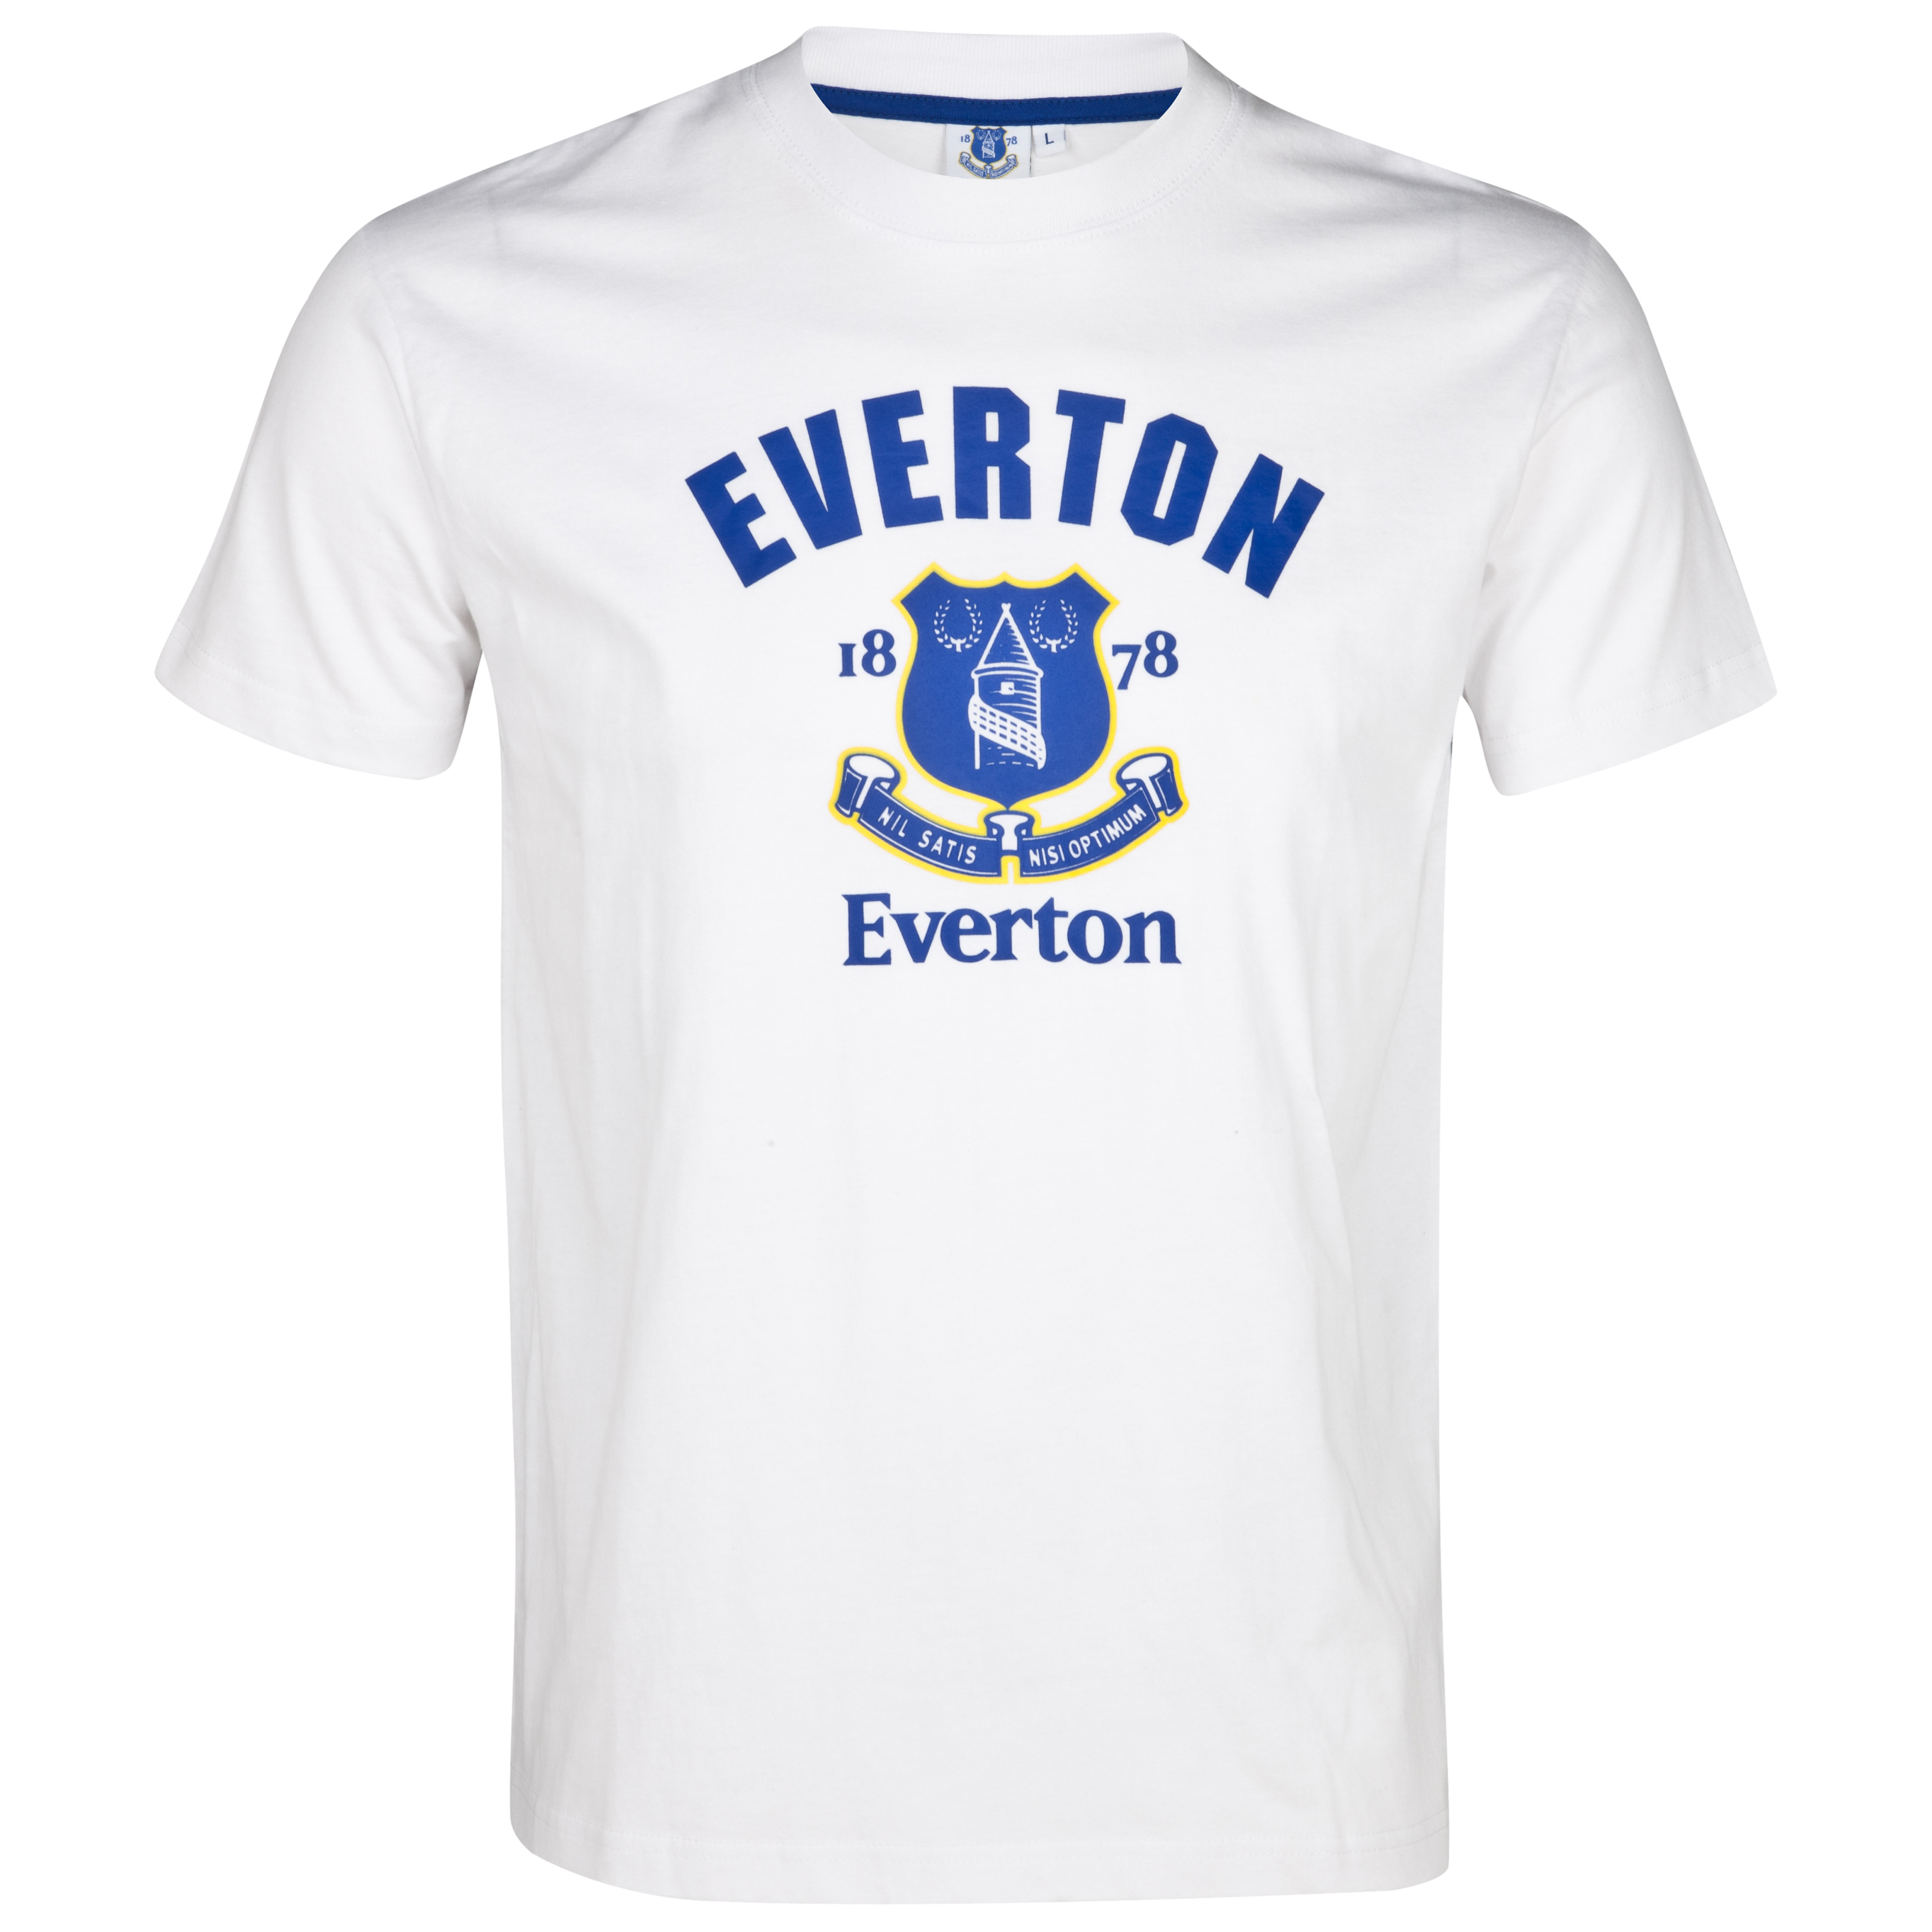 Everton Essentials Whistle T-Shirt - White - Older Boys